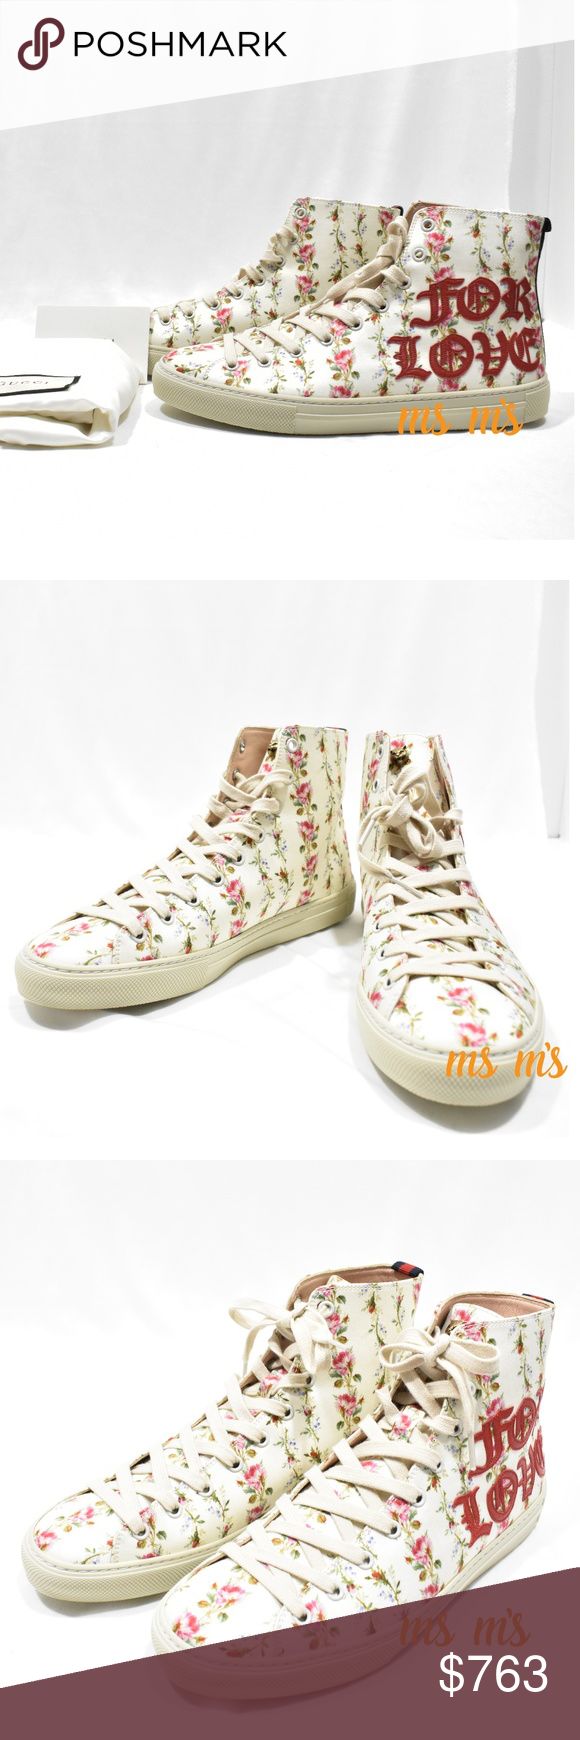 1567b72574d Spotted while shopping on Poshmark  New GUCCI Blind for Love Floral High  Top Sneakers!